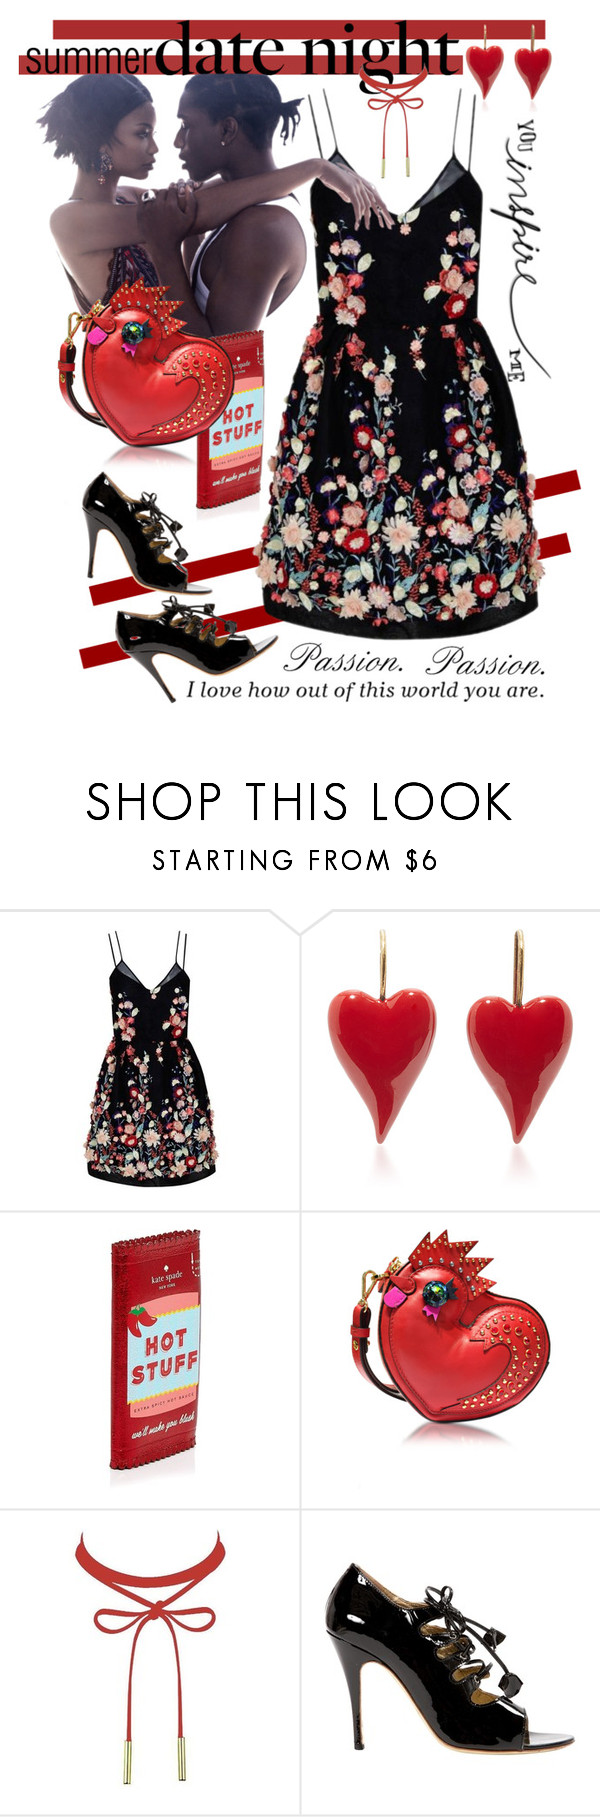 """""""Summer Date Night"""" by giovanina-001 ❤ liked on Polyvore featuring The 2nd Skin Co., Kate Spade, MCM, Vivienne Westwood and summerdatenight"""